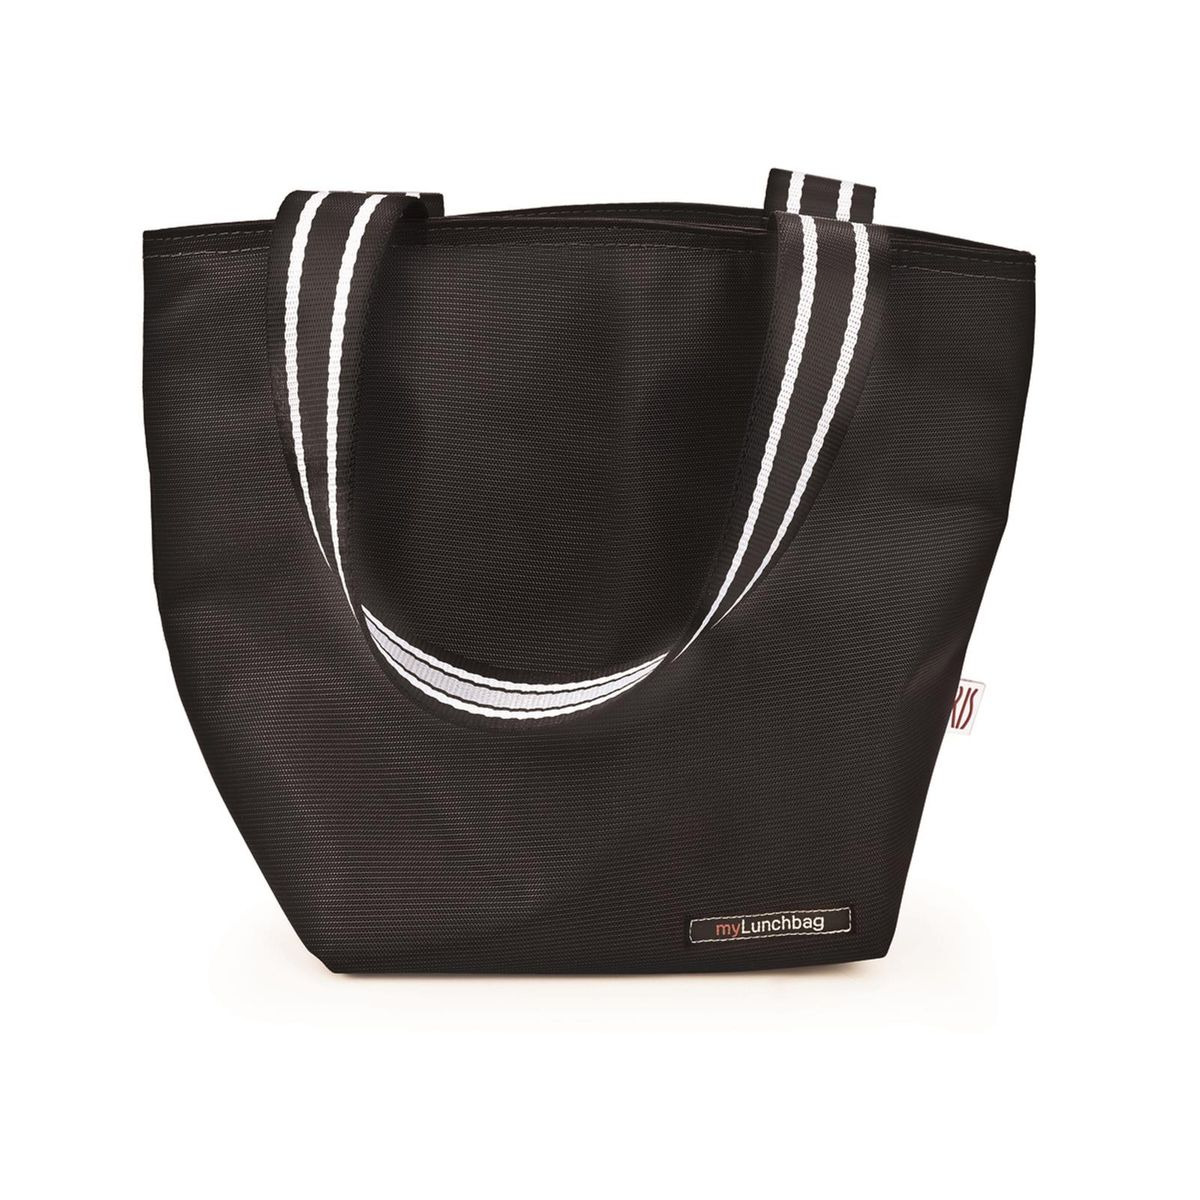 Sac lunch tote noir 3.7l - Iris